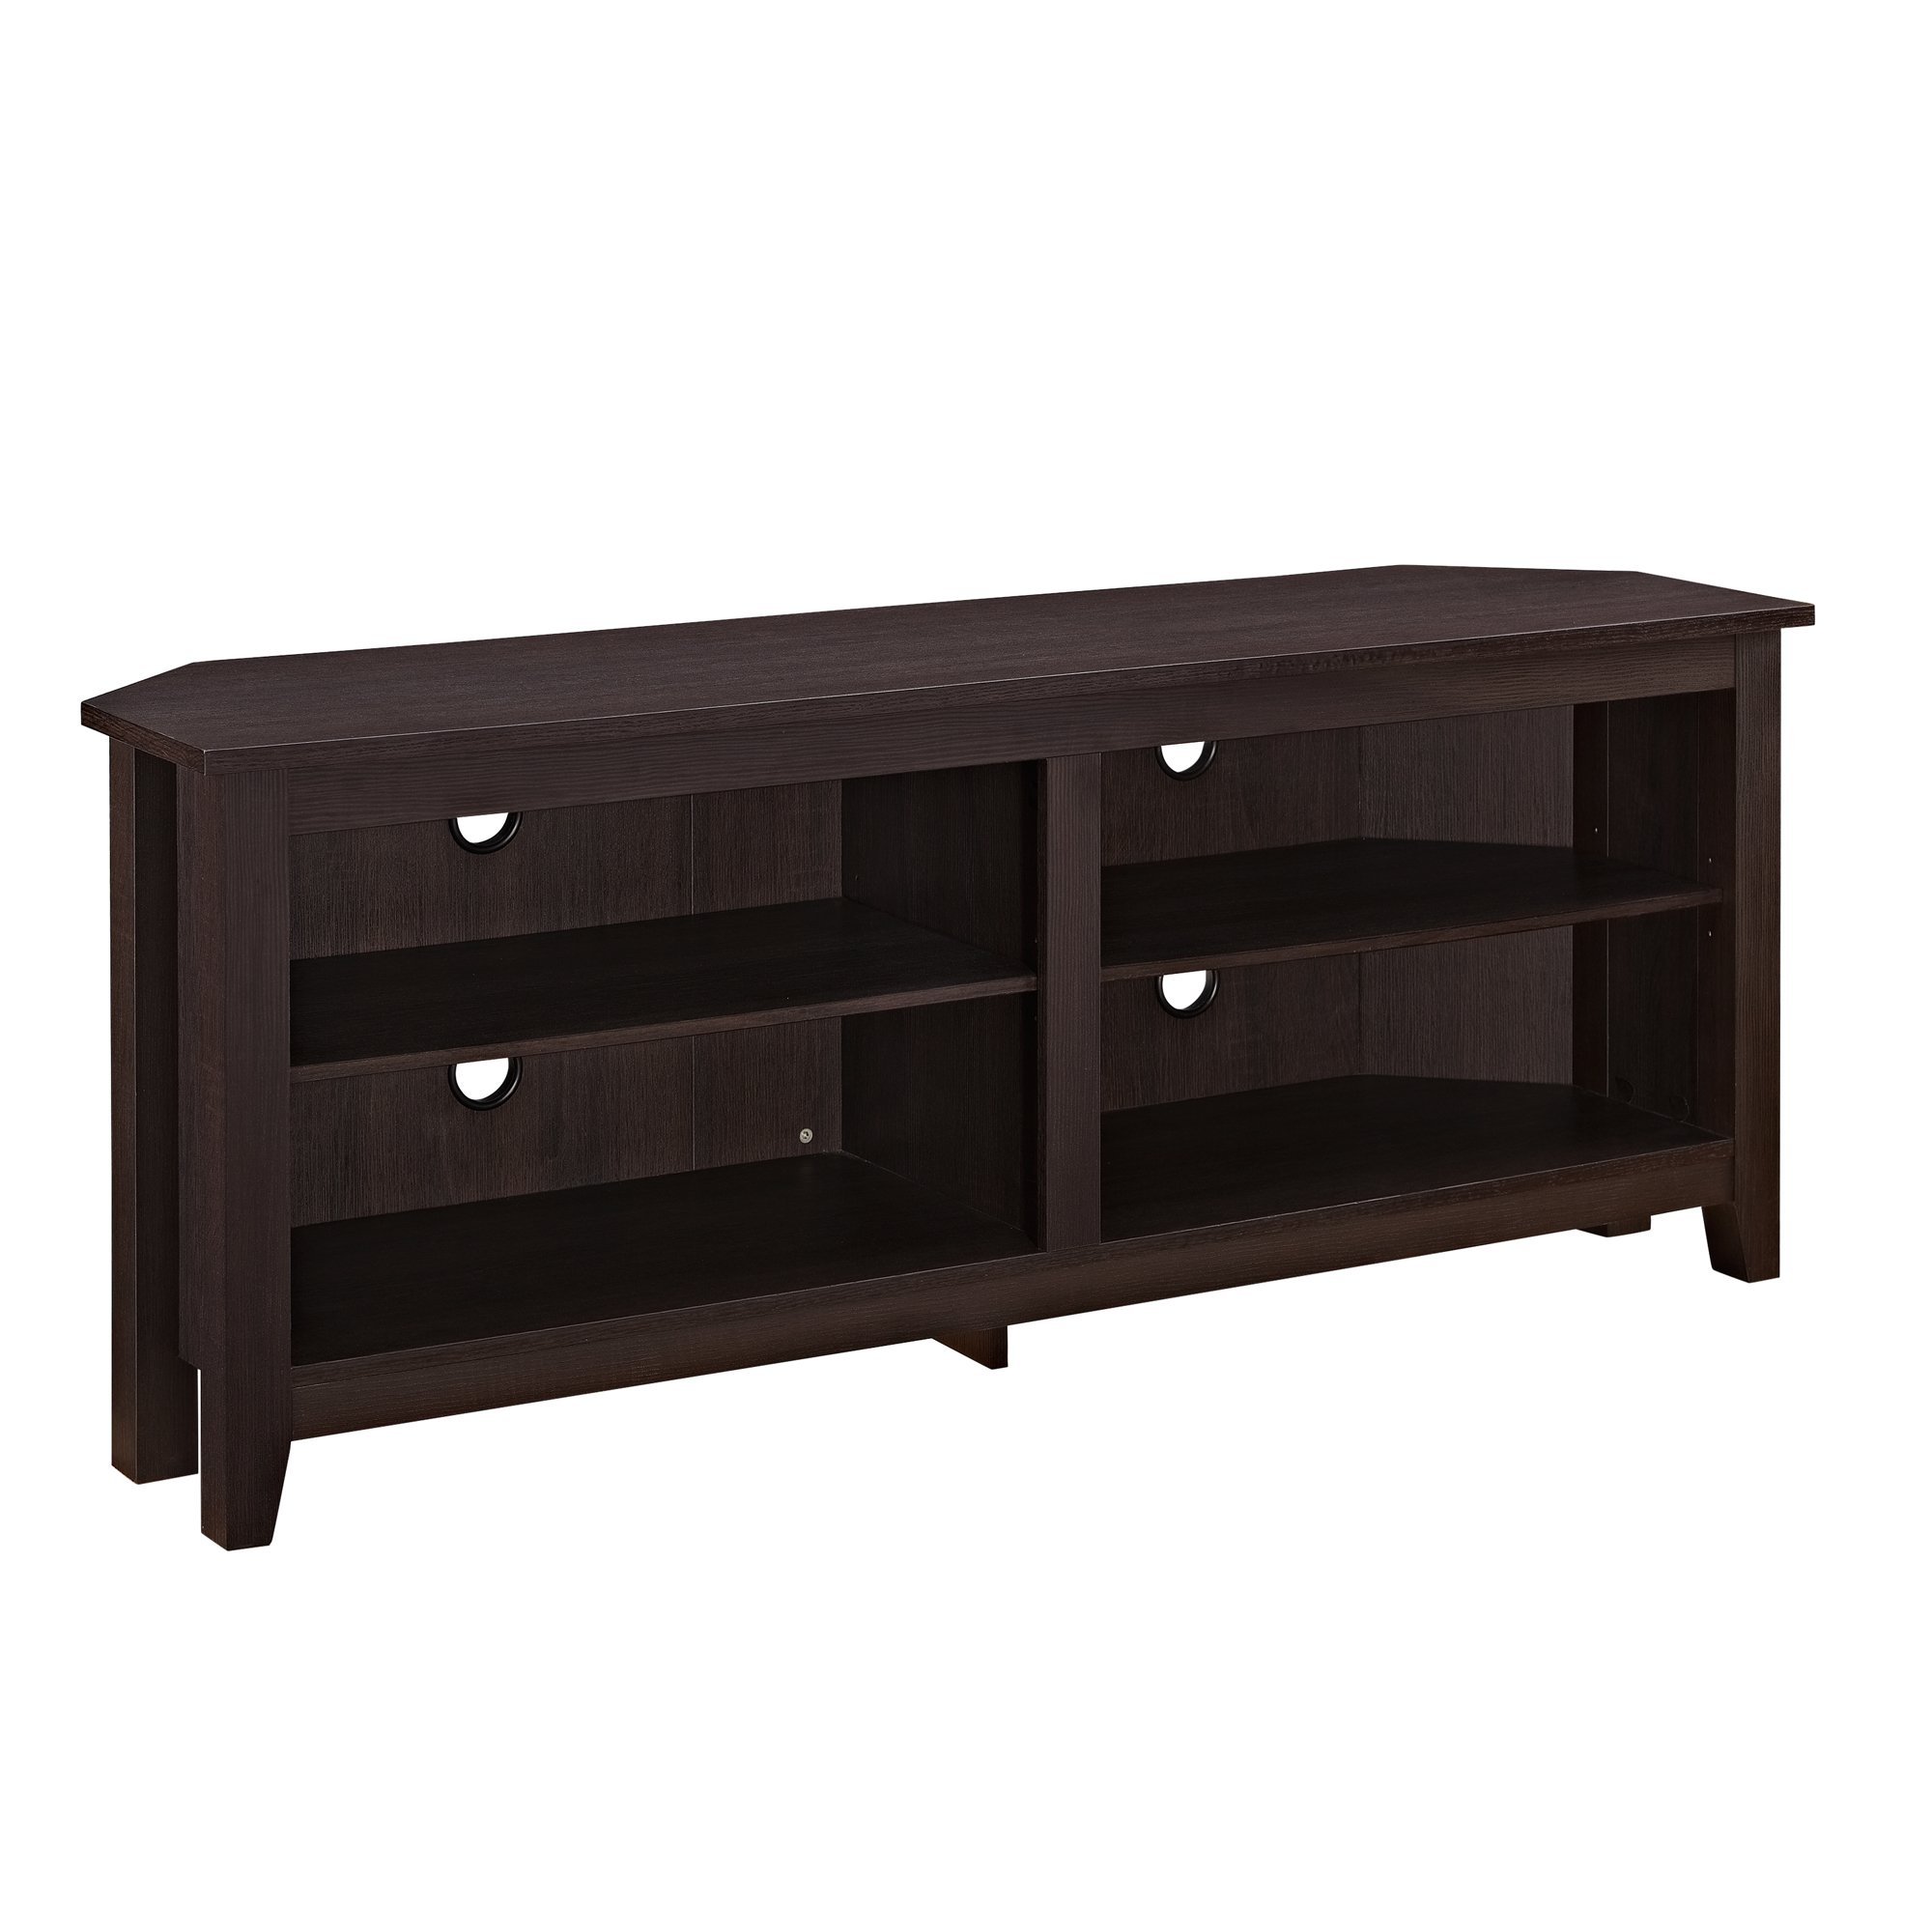 Simple Farmhouse Wood TV Stand with Storage Cabinets for TV's up to 56'' Living Room by WE Furniture